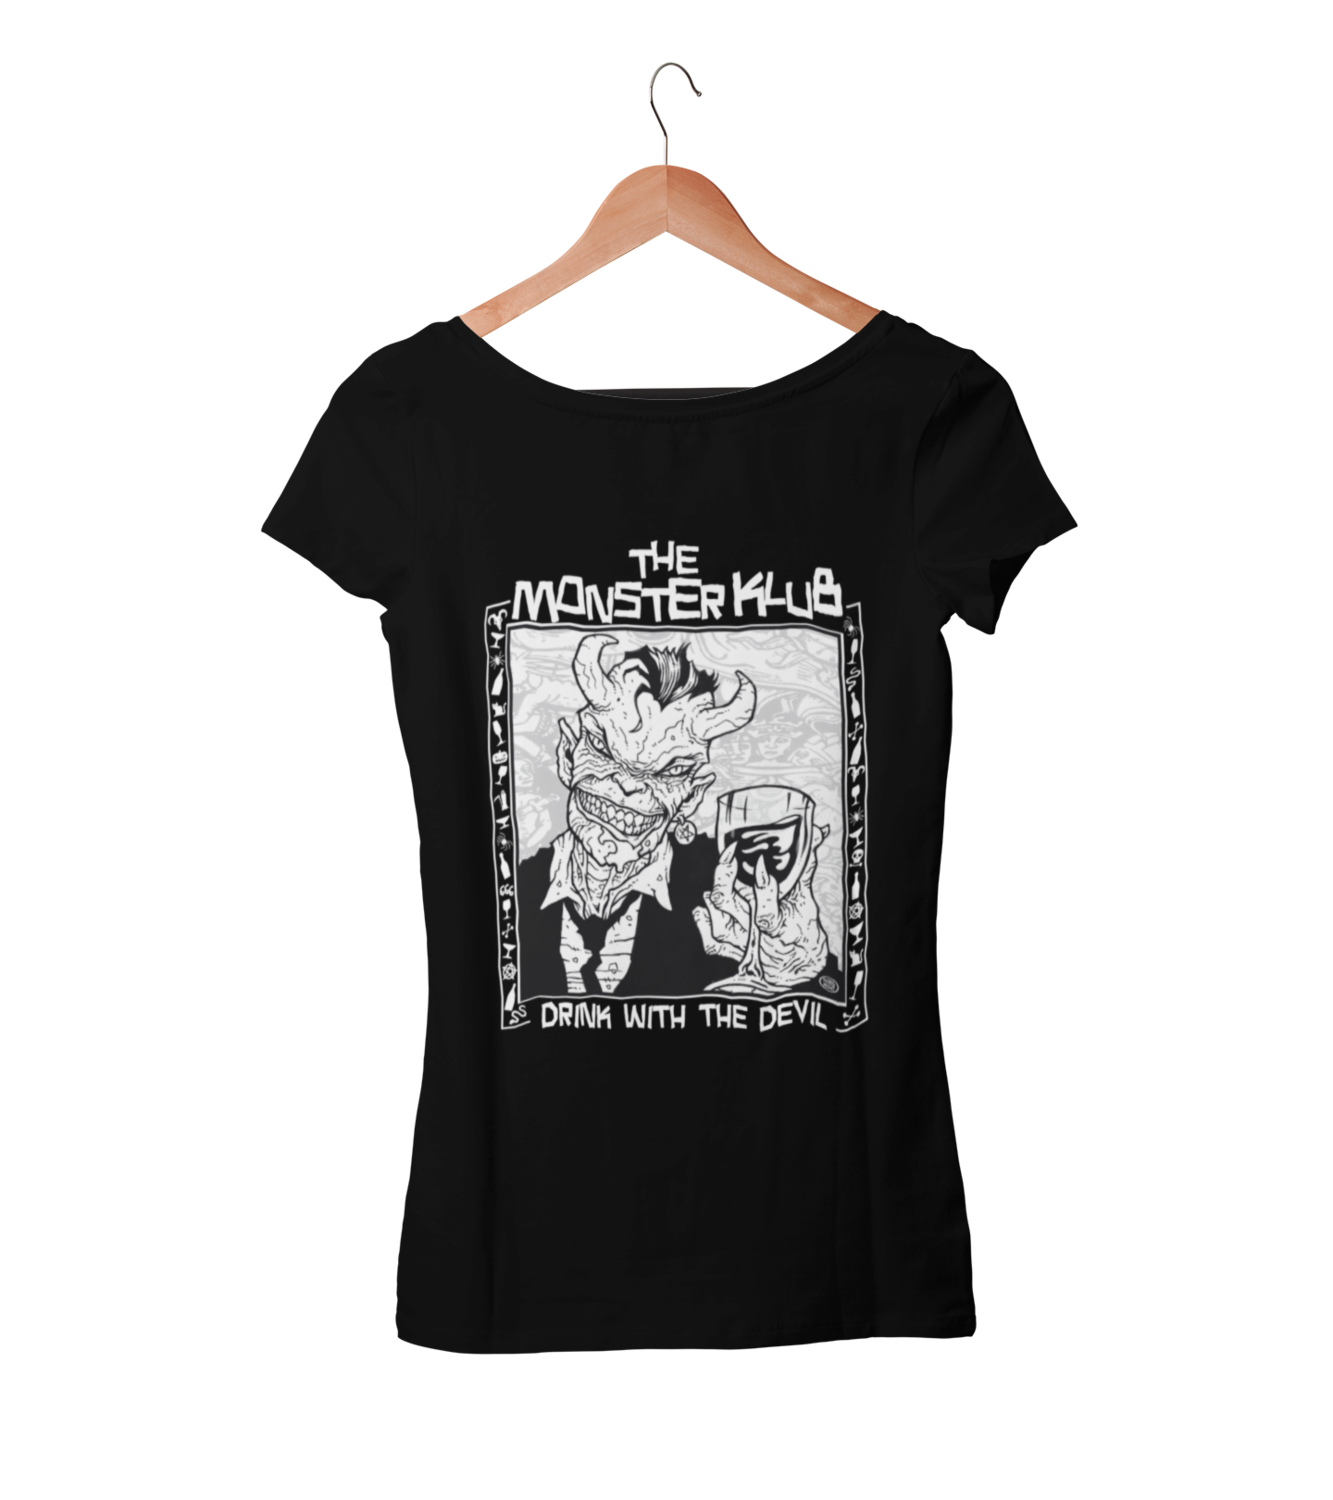 """MONSTER KLUB """"Drink with the devil""""  tshirt for WOMEN"""